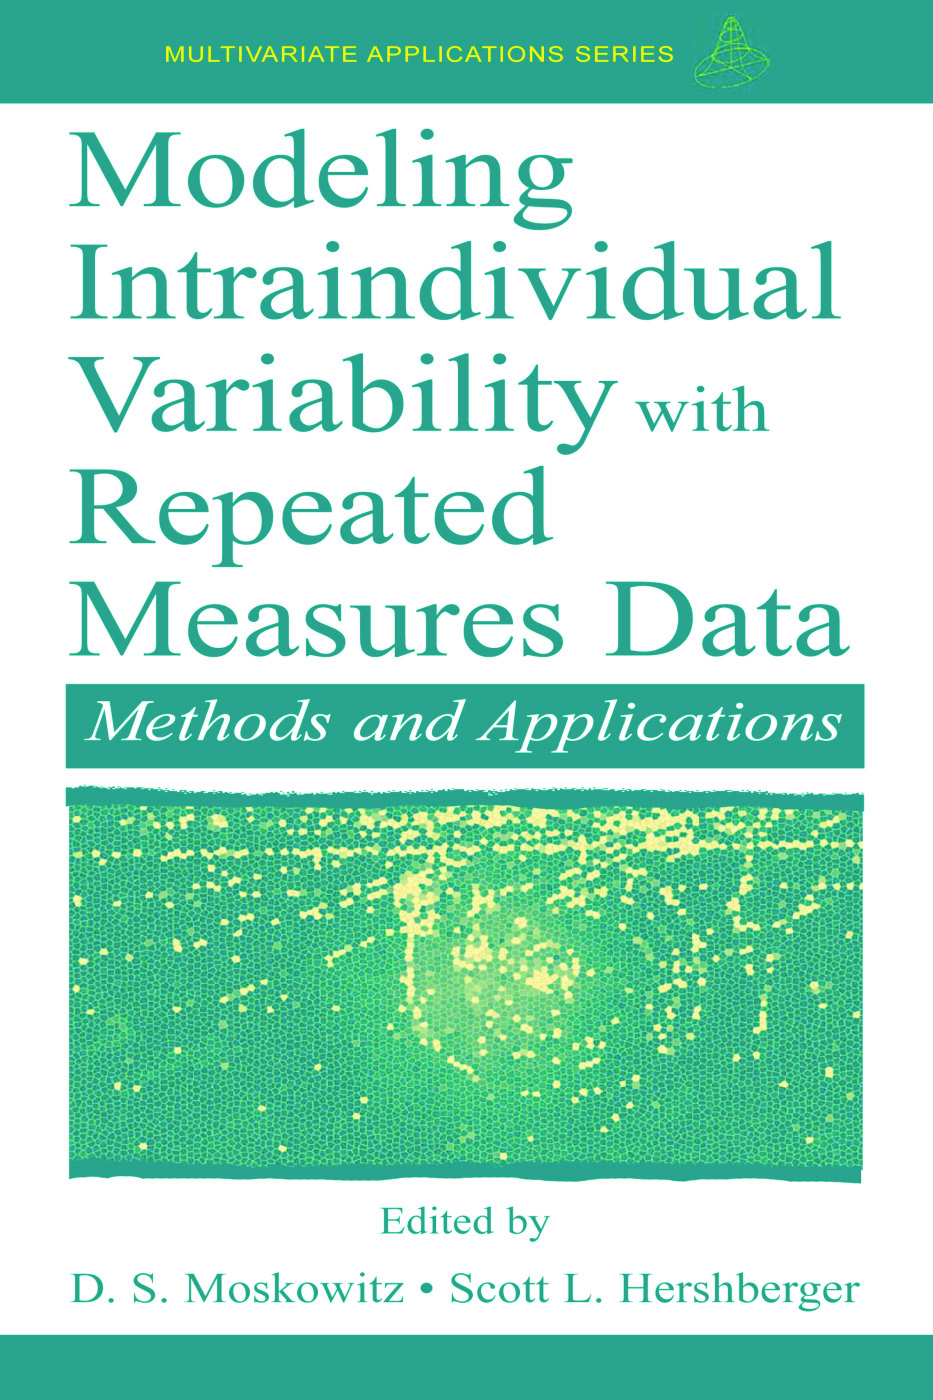 Modeling Intraindividual Variability With Repeated Measures Data: Methods and Applications book cover